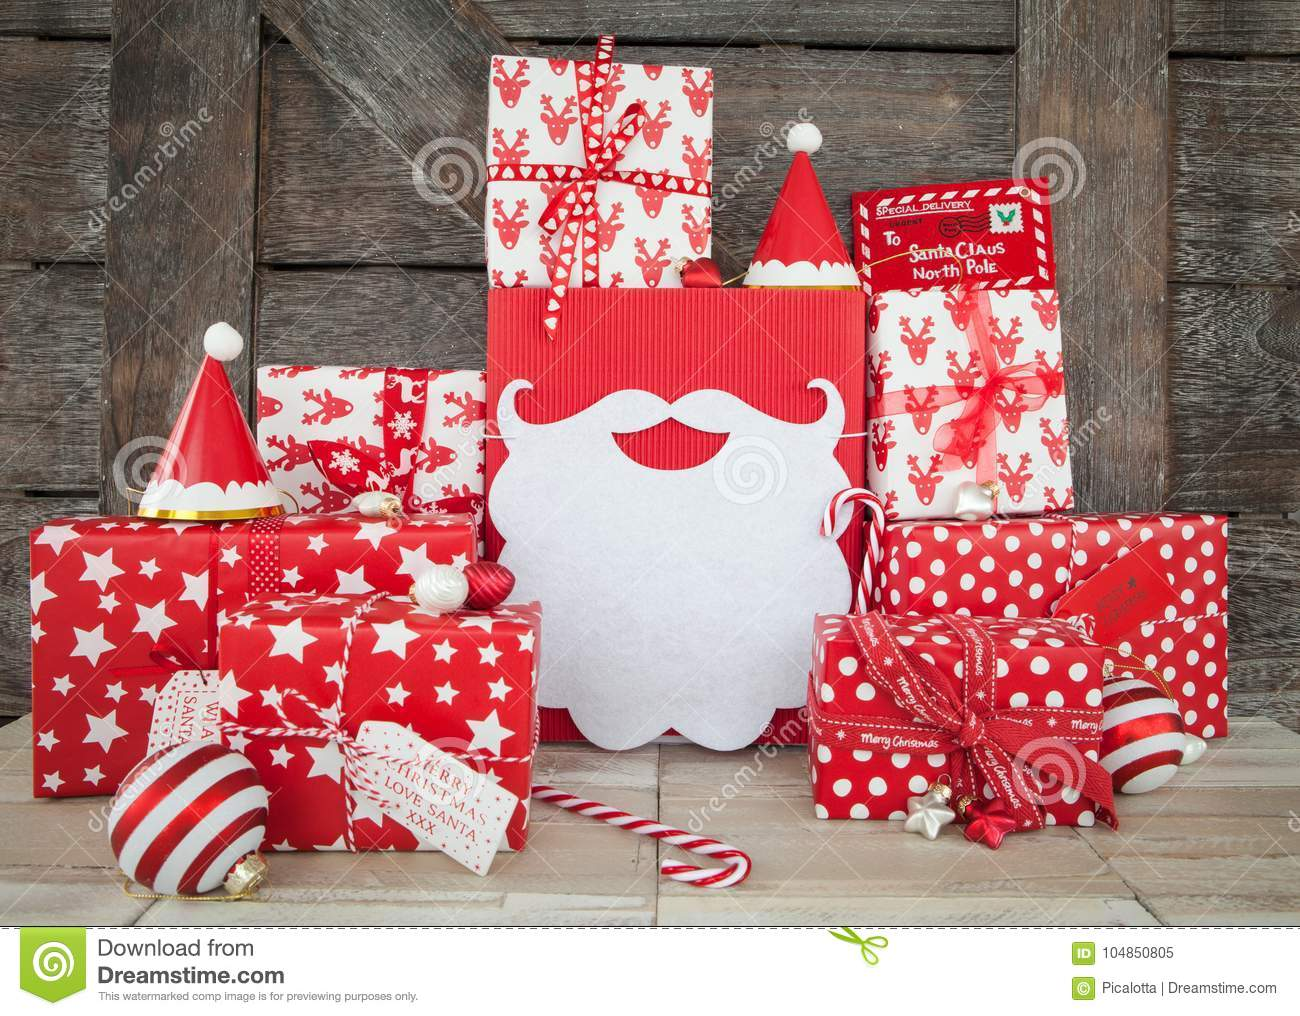 Presents In Red And White Wrapping Paper Stock Image - Image of